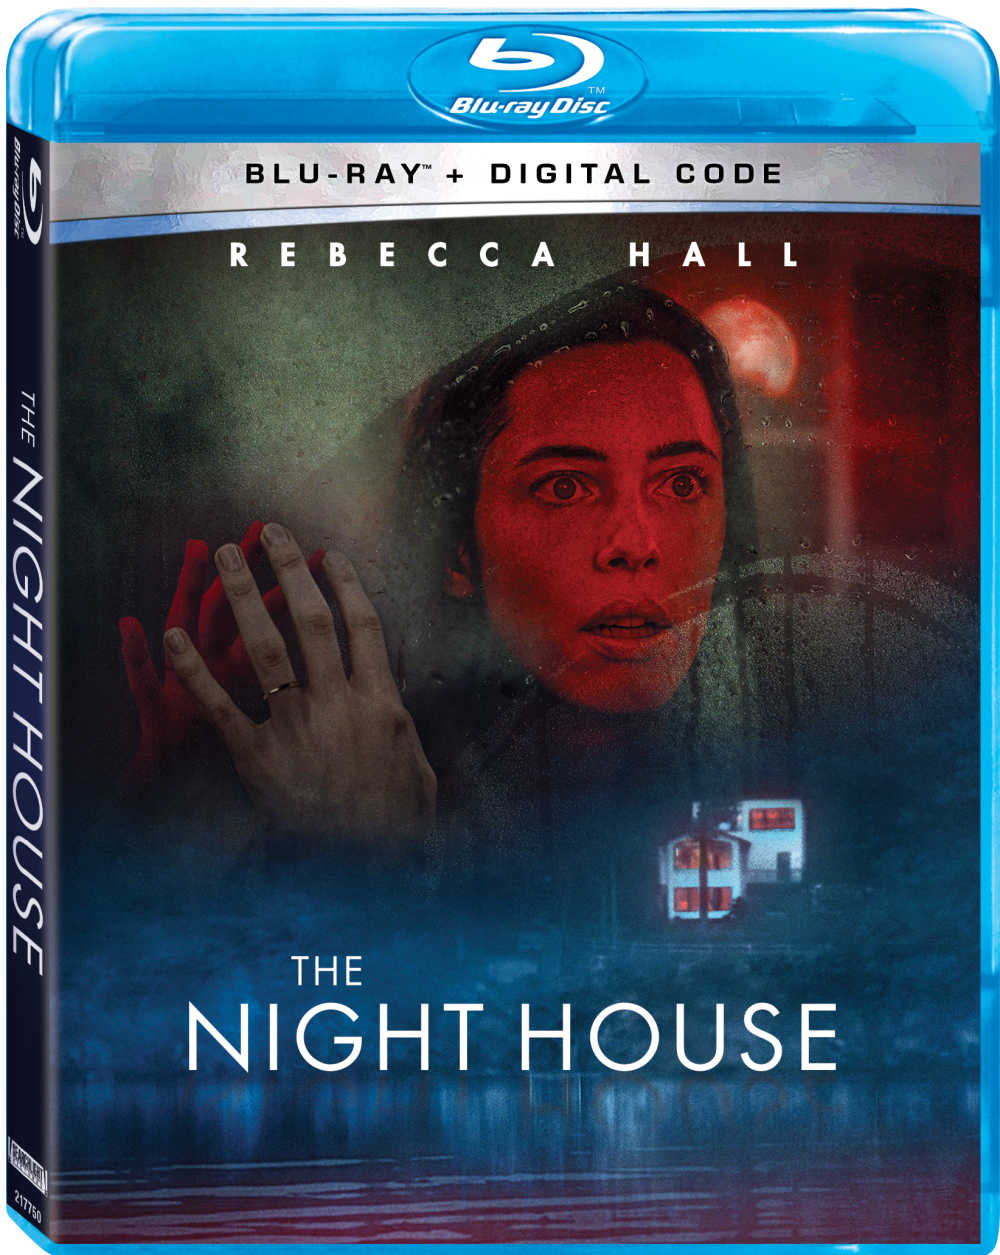 It's time to watch the new psychological horror movie, The Night House, at home, so get ready to be scared.